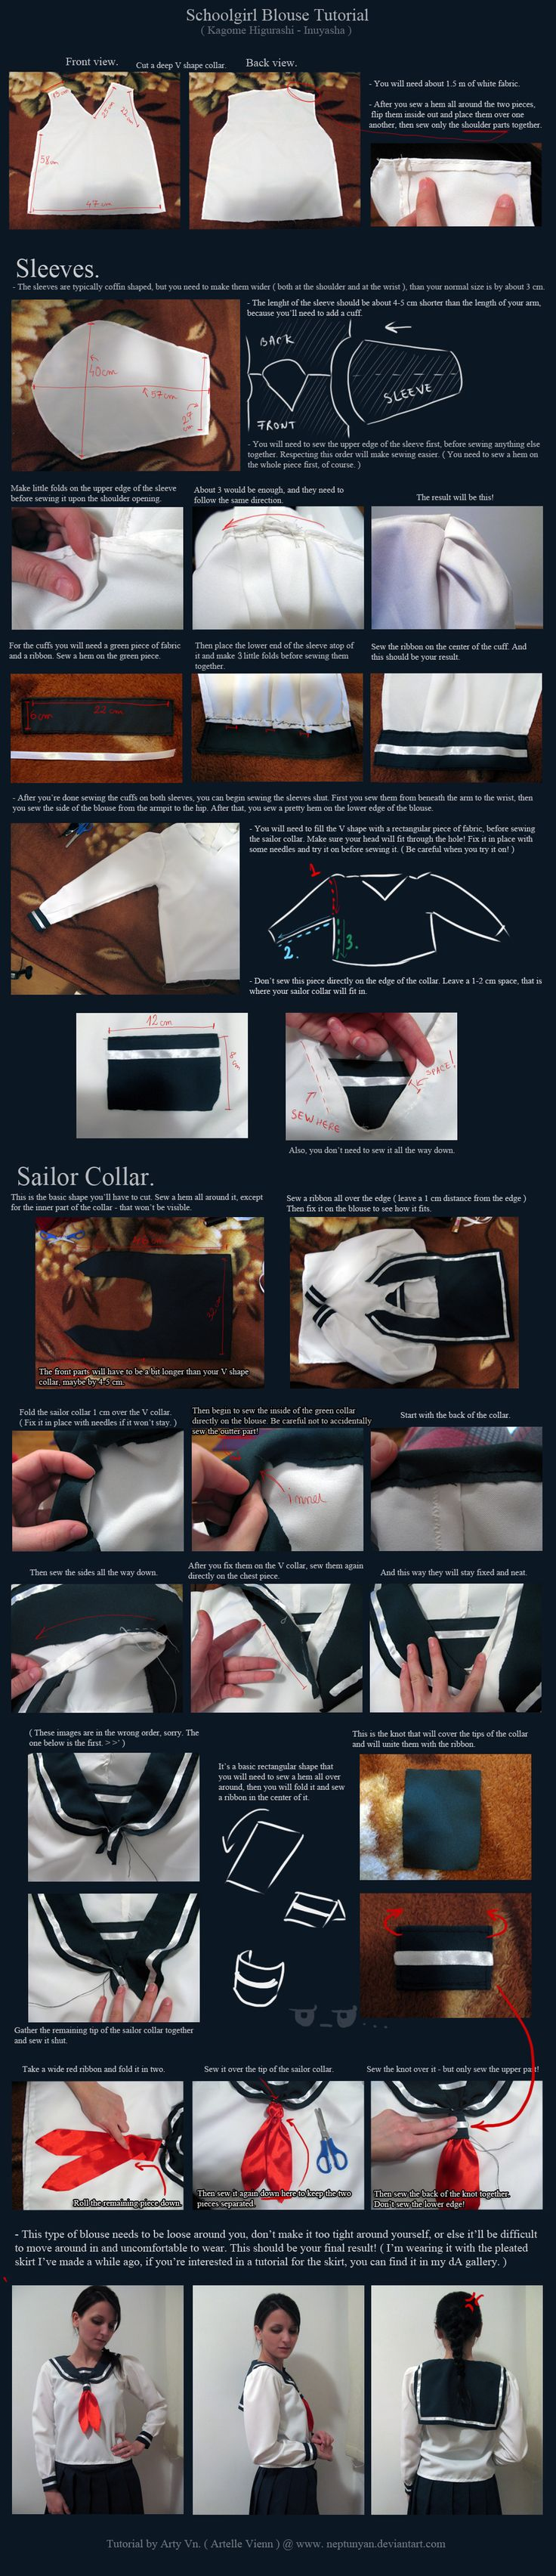 Schoolgirl Uniform Tutorial - Kagome Higurashi. by neptunyan on deviantART